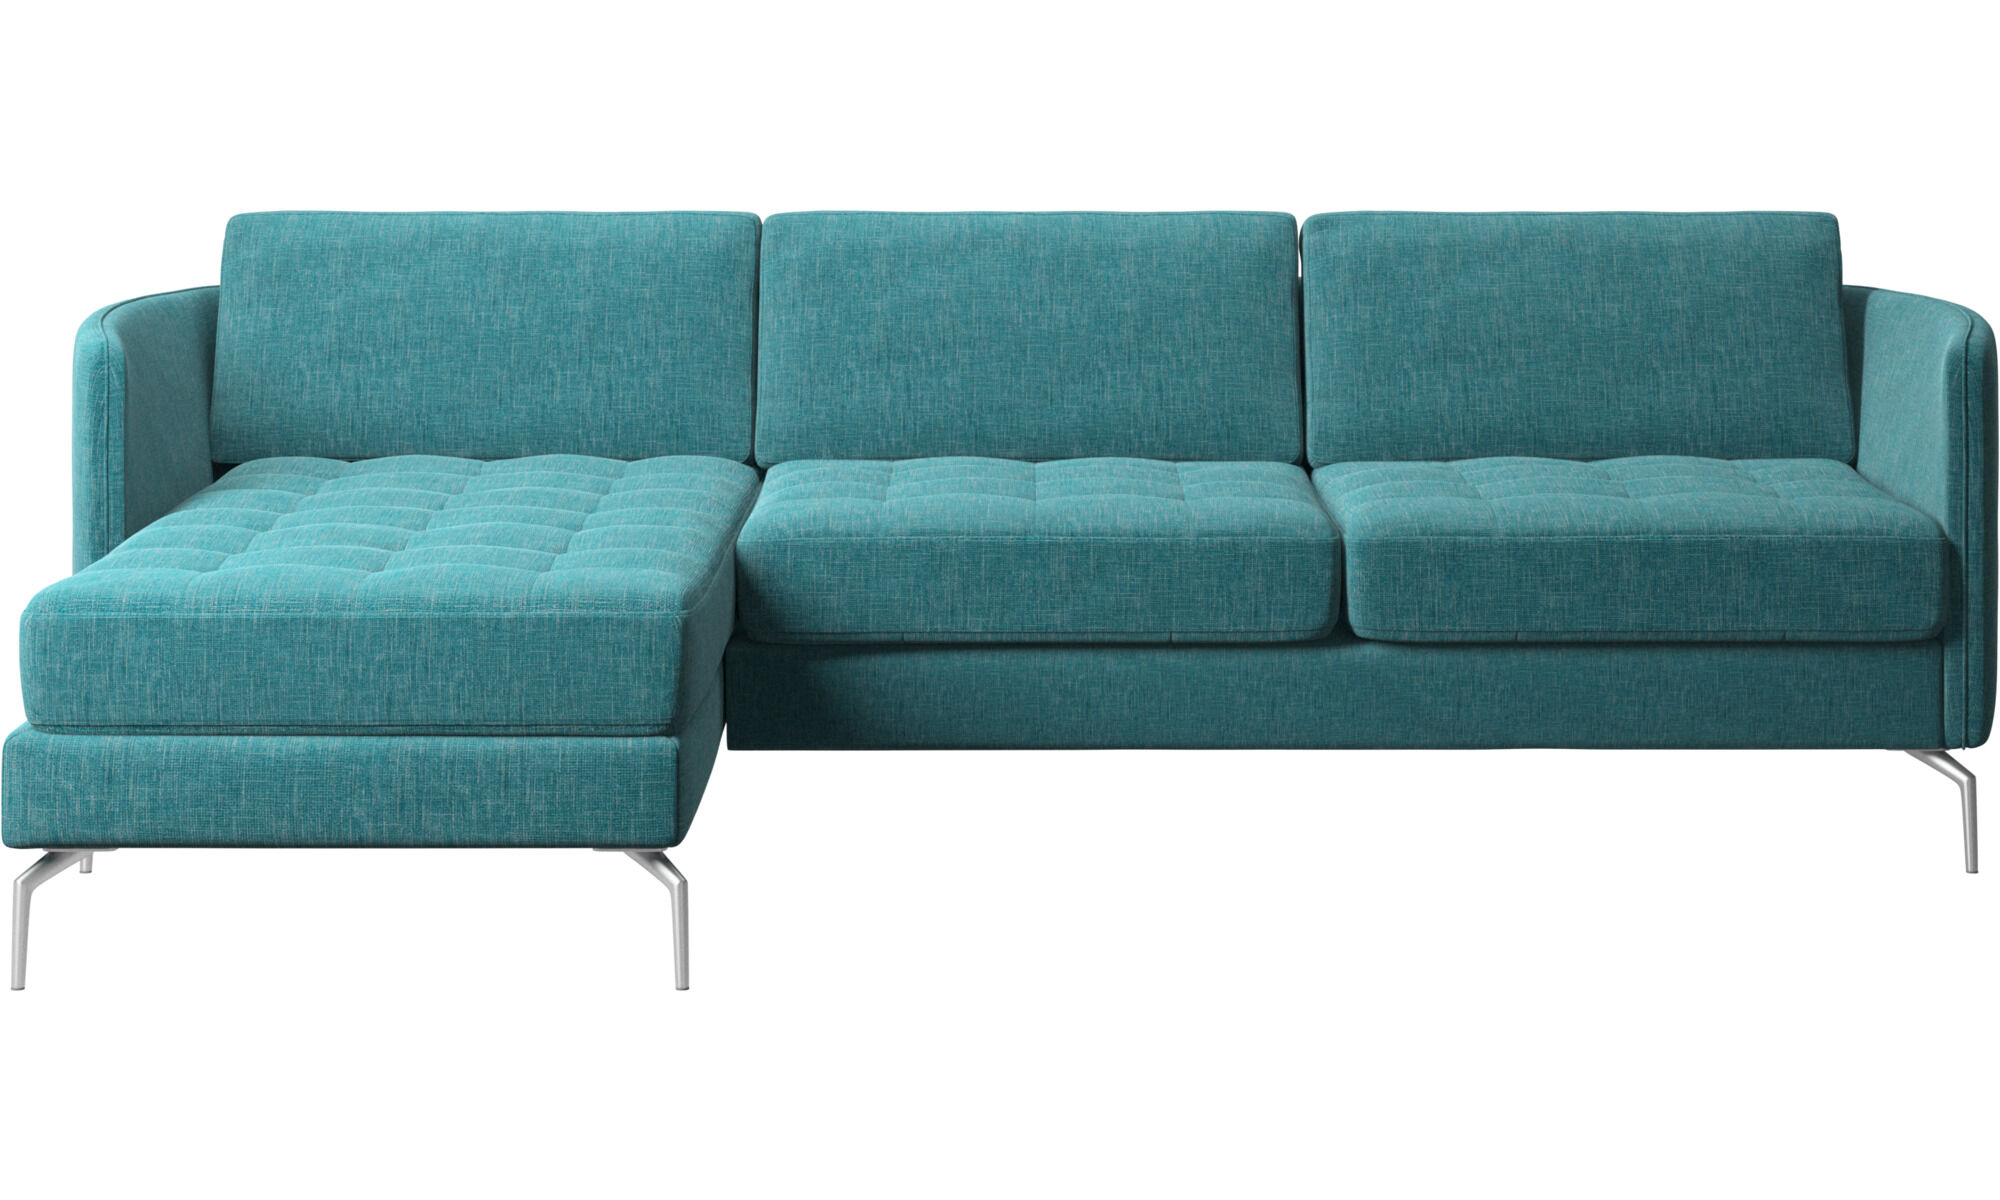 Chaise lounge sofas - Osaka sofa with resting unit tufted seat - Blue - Fabric  sc 1 st  BoConcept : chaise longue sofa - Sectionals, Sofas & Couches